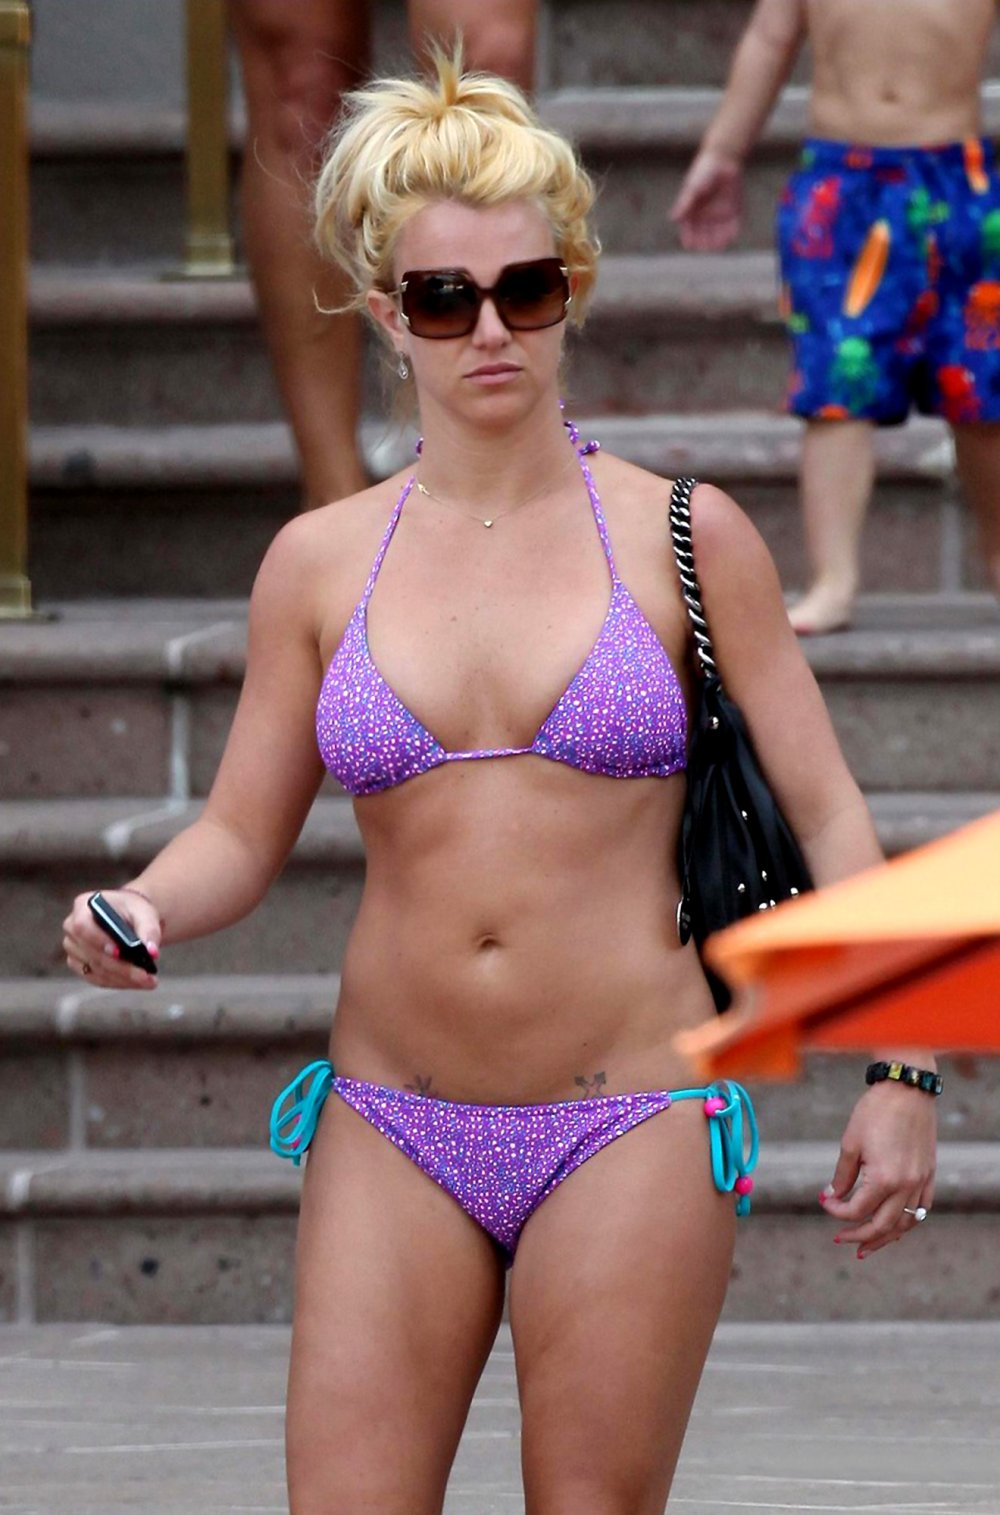 Hot pictures of britney spears bikini